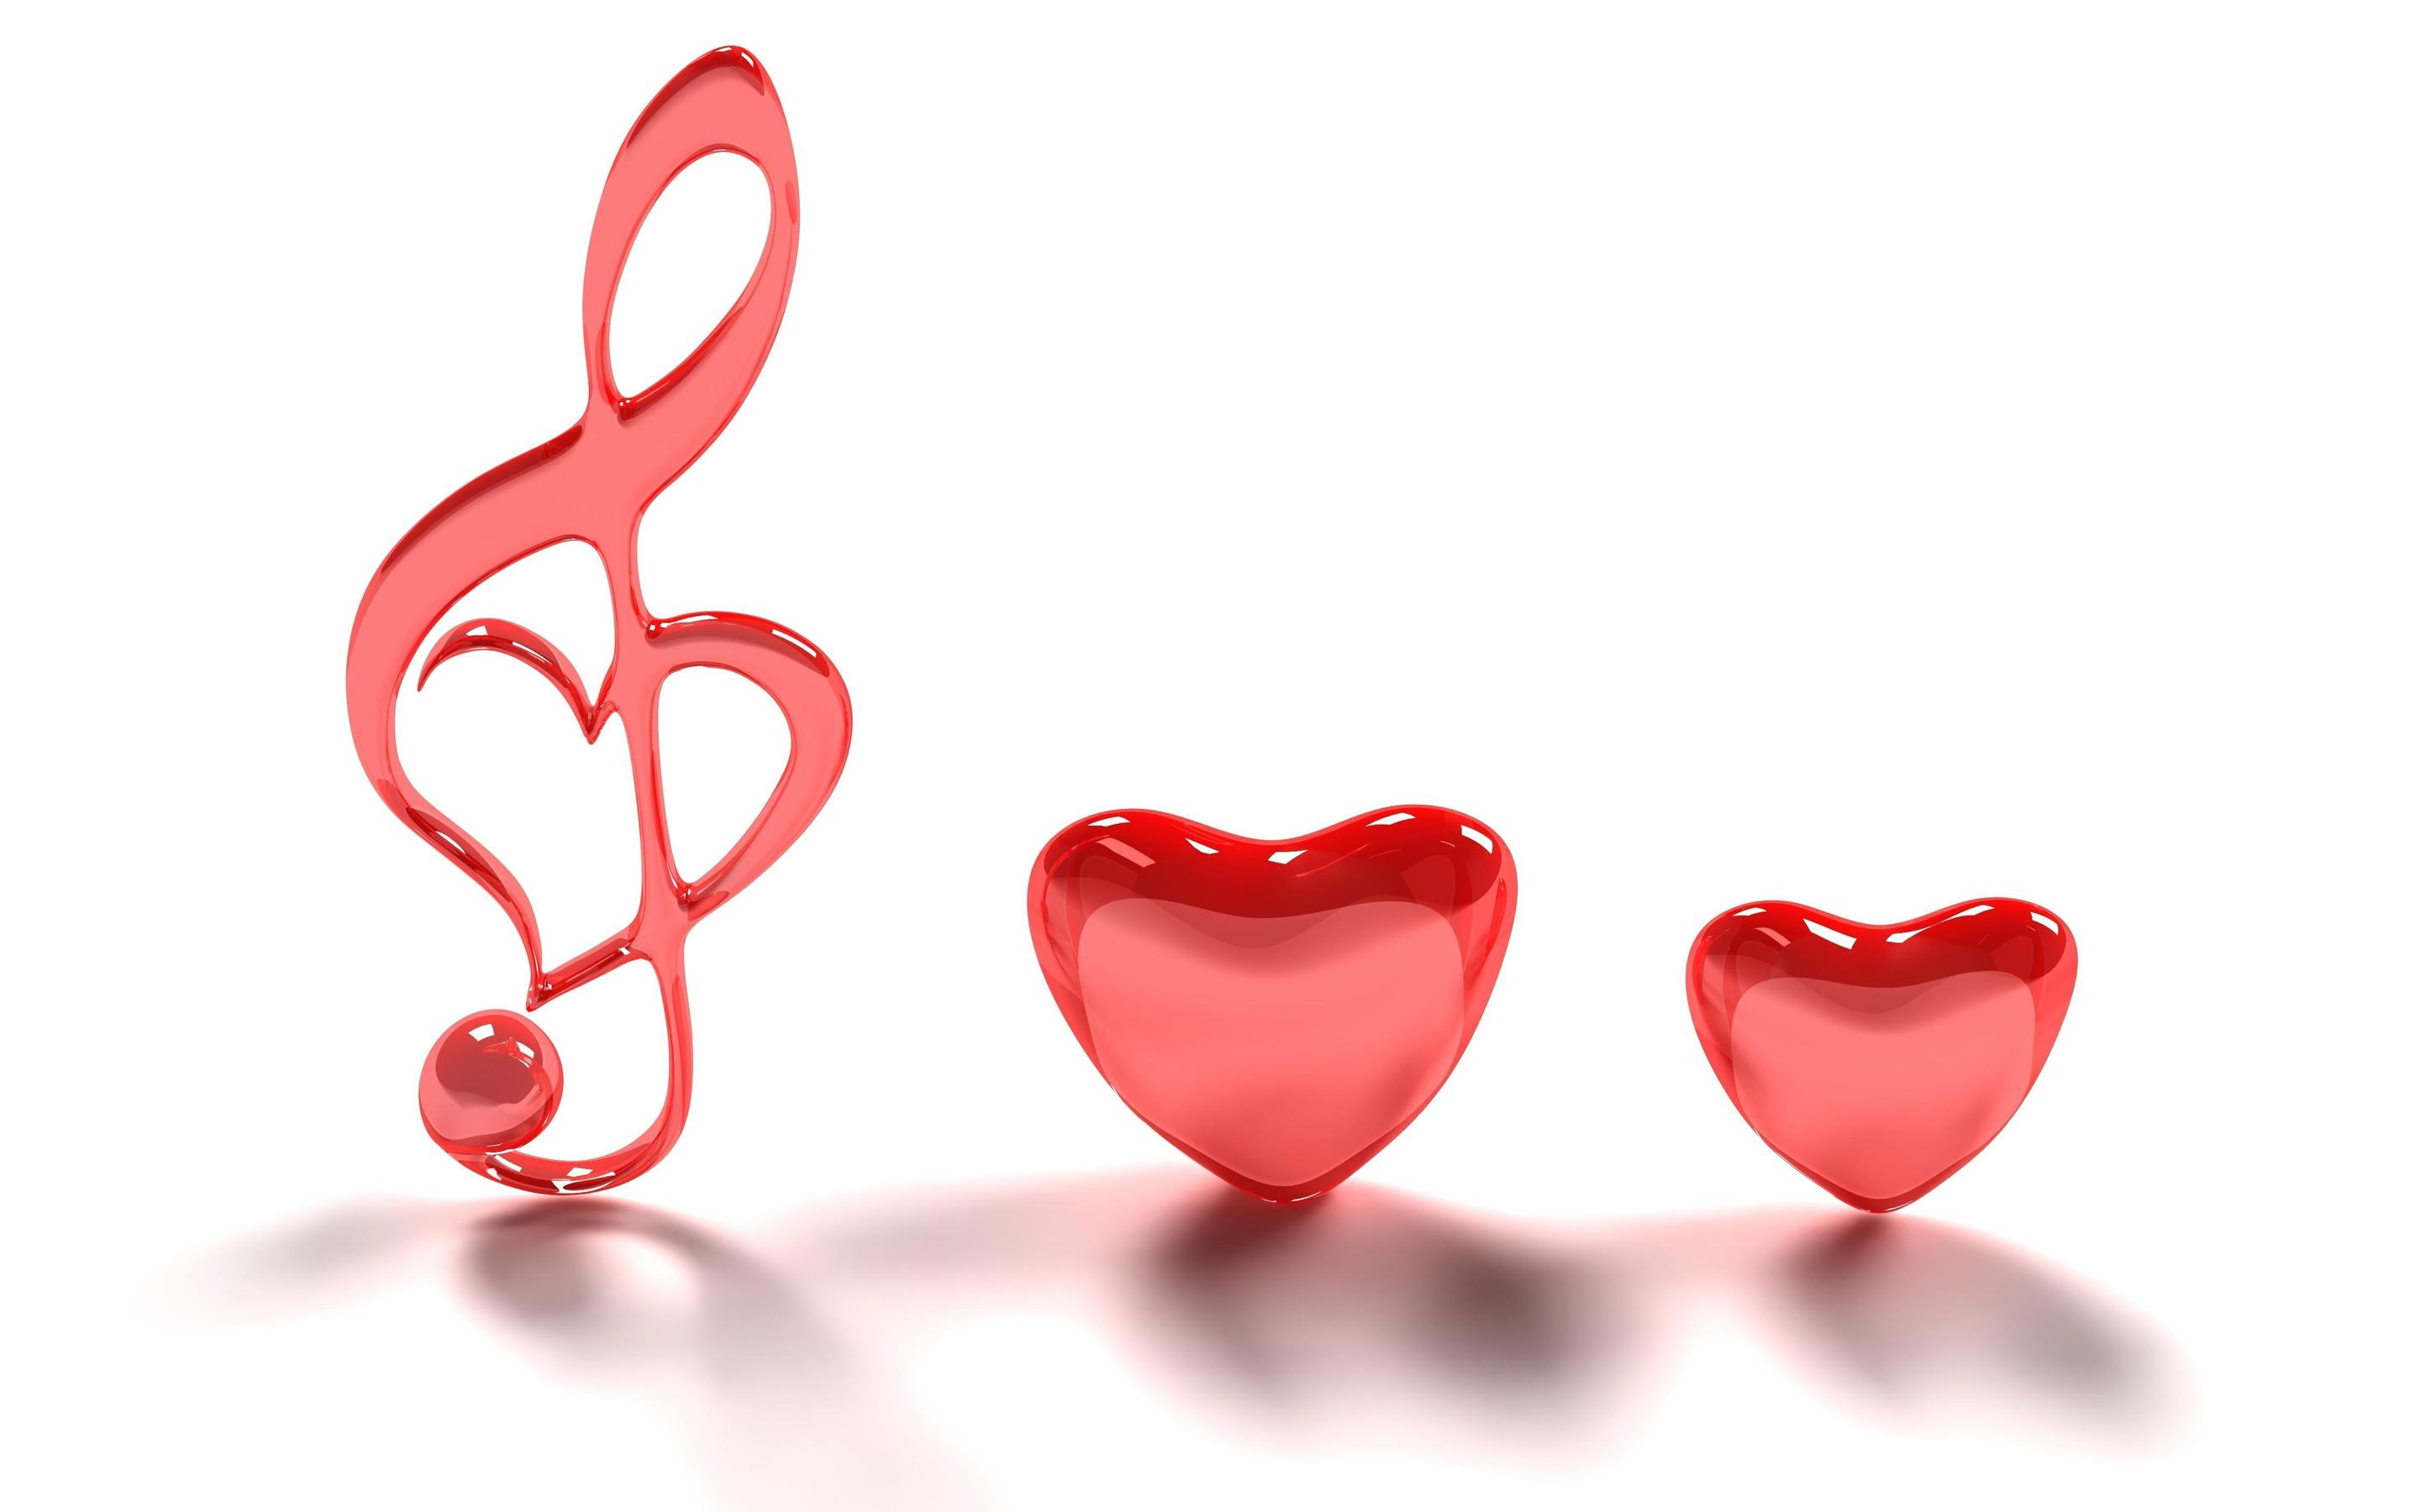 Cute Red Love Heart Wallpaper Live HD Wallpaper HQ Pictures Images 2880x1800